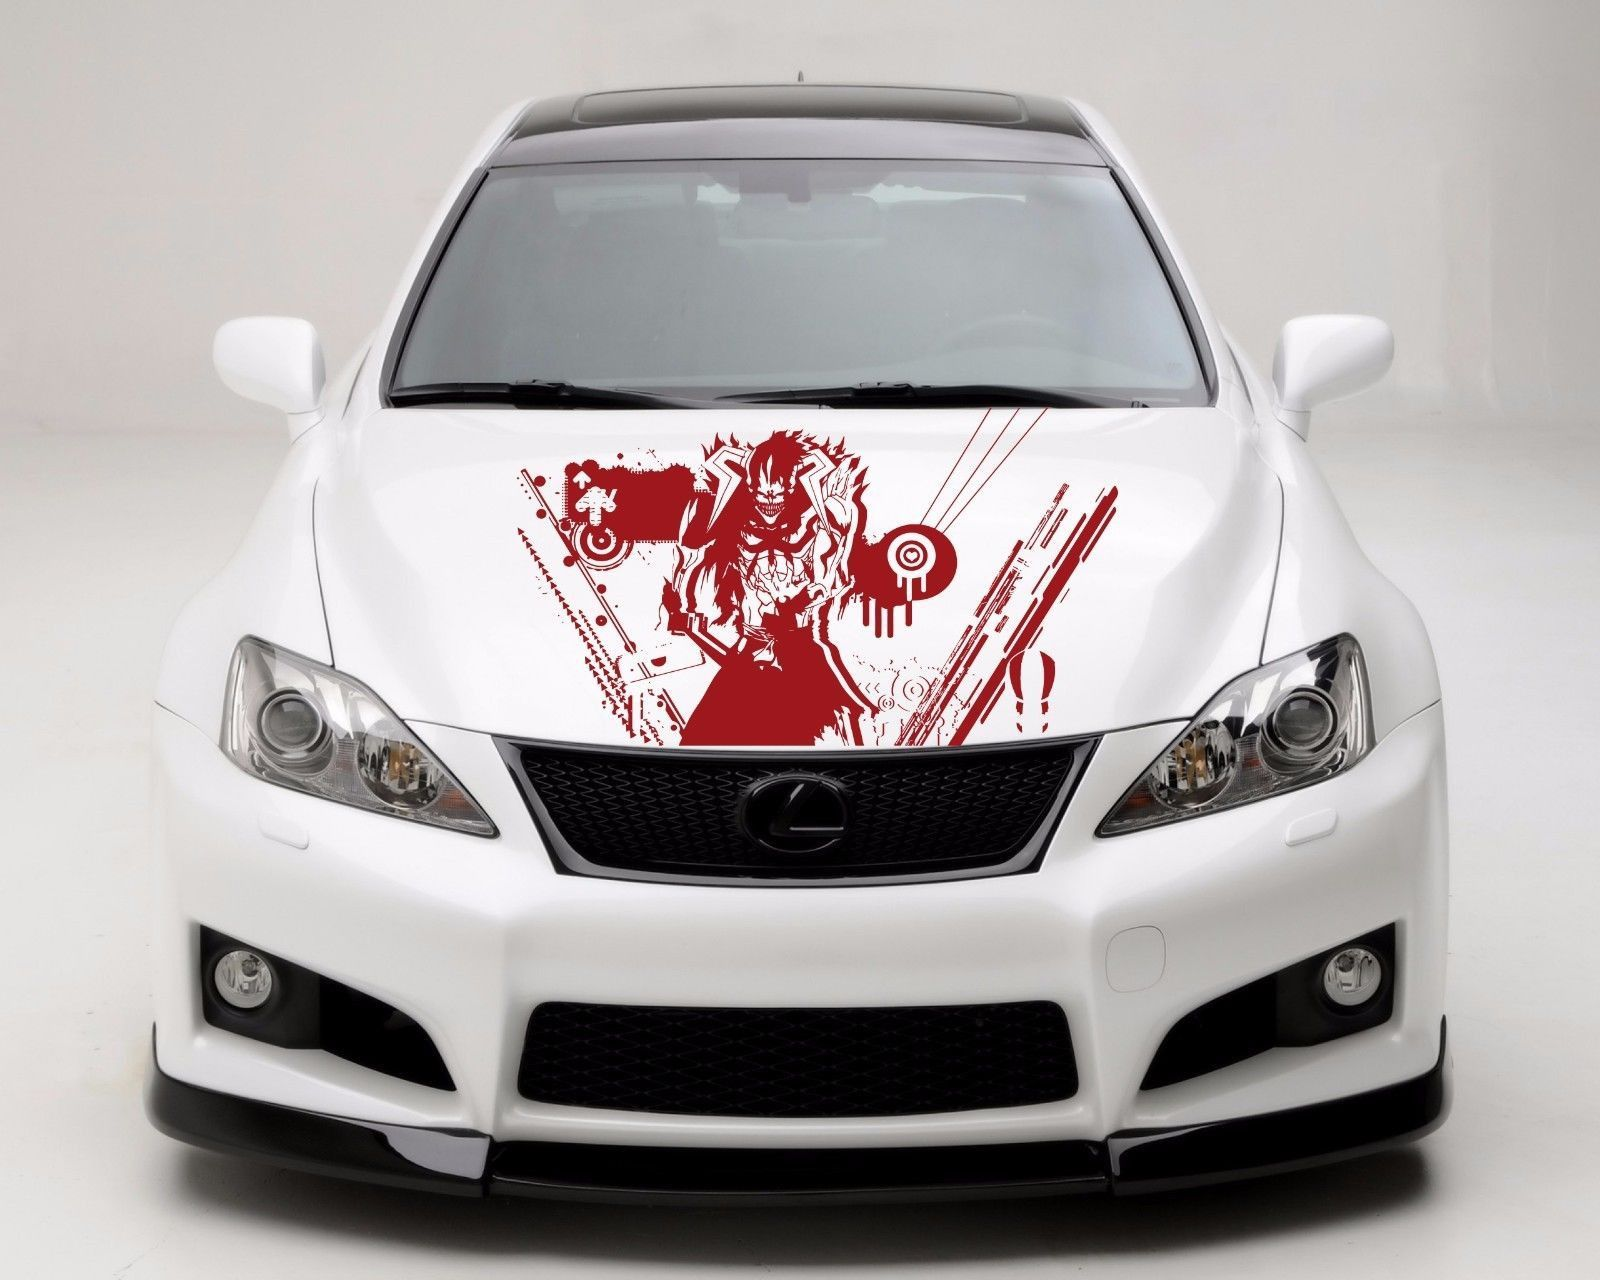 Anime Car Decal Car Decal Car Sticker Monster Car Vinyl Anime - Lexus custom vinyl decals for car